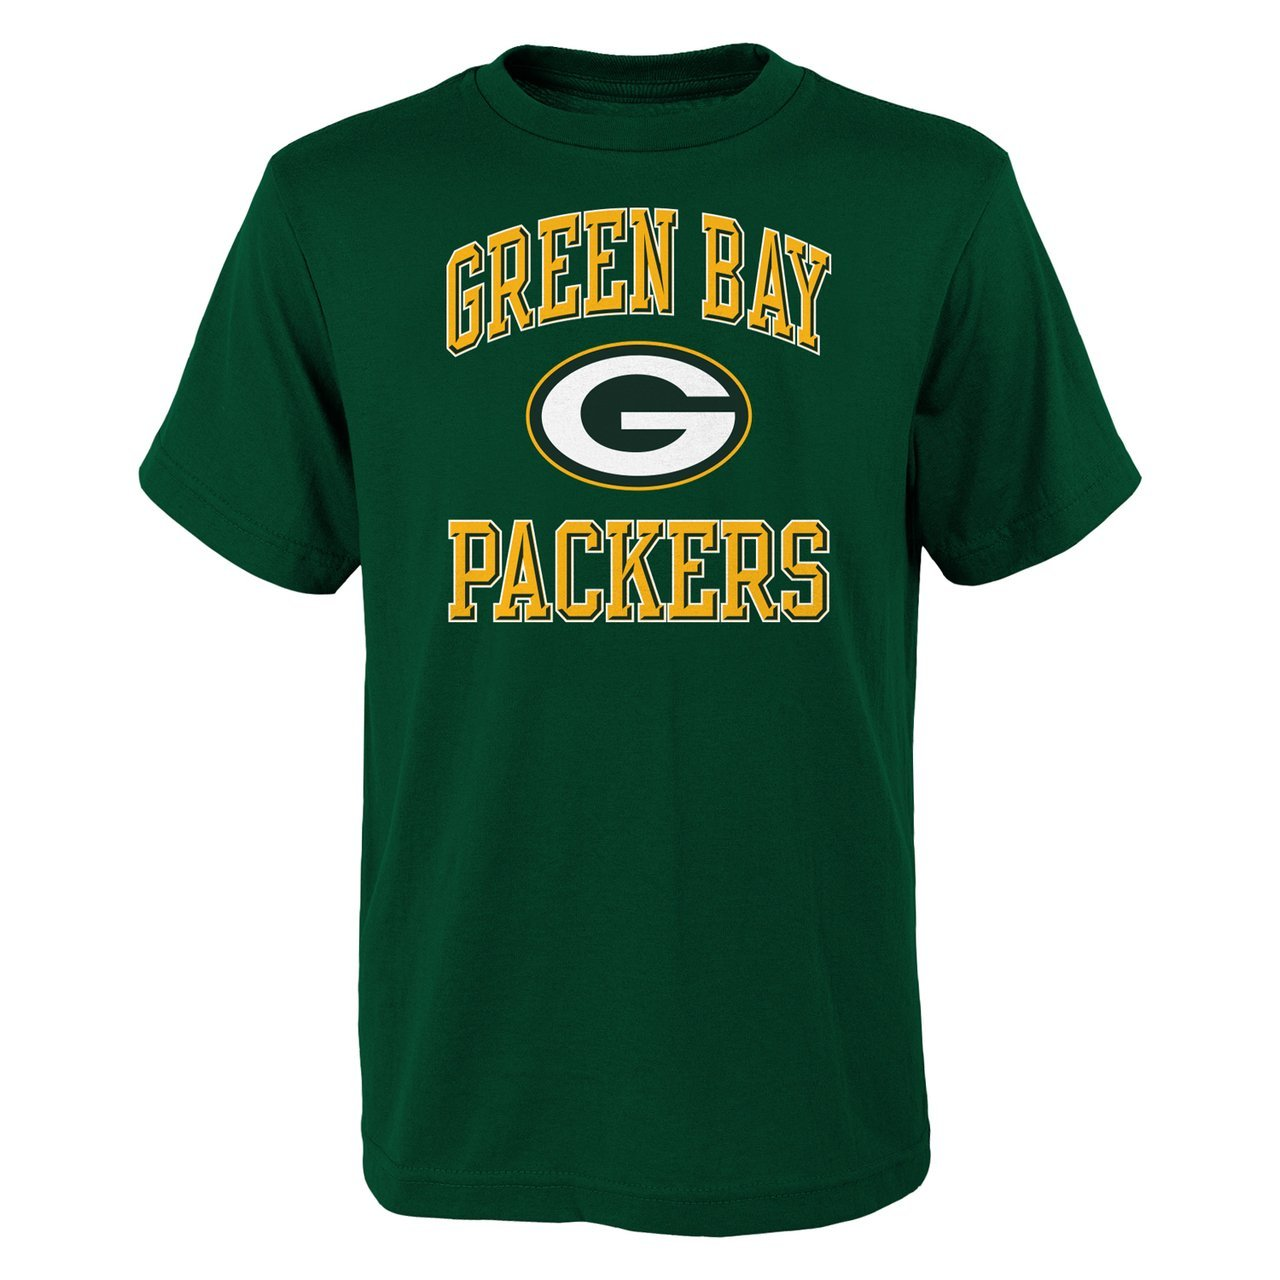 Green Bay Packers Youth Ovation Alternate T-Shirt - Green , Youth Small